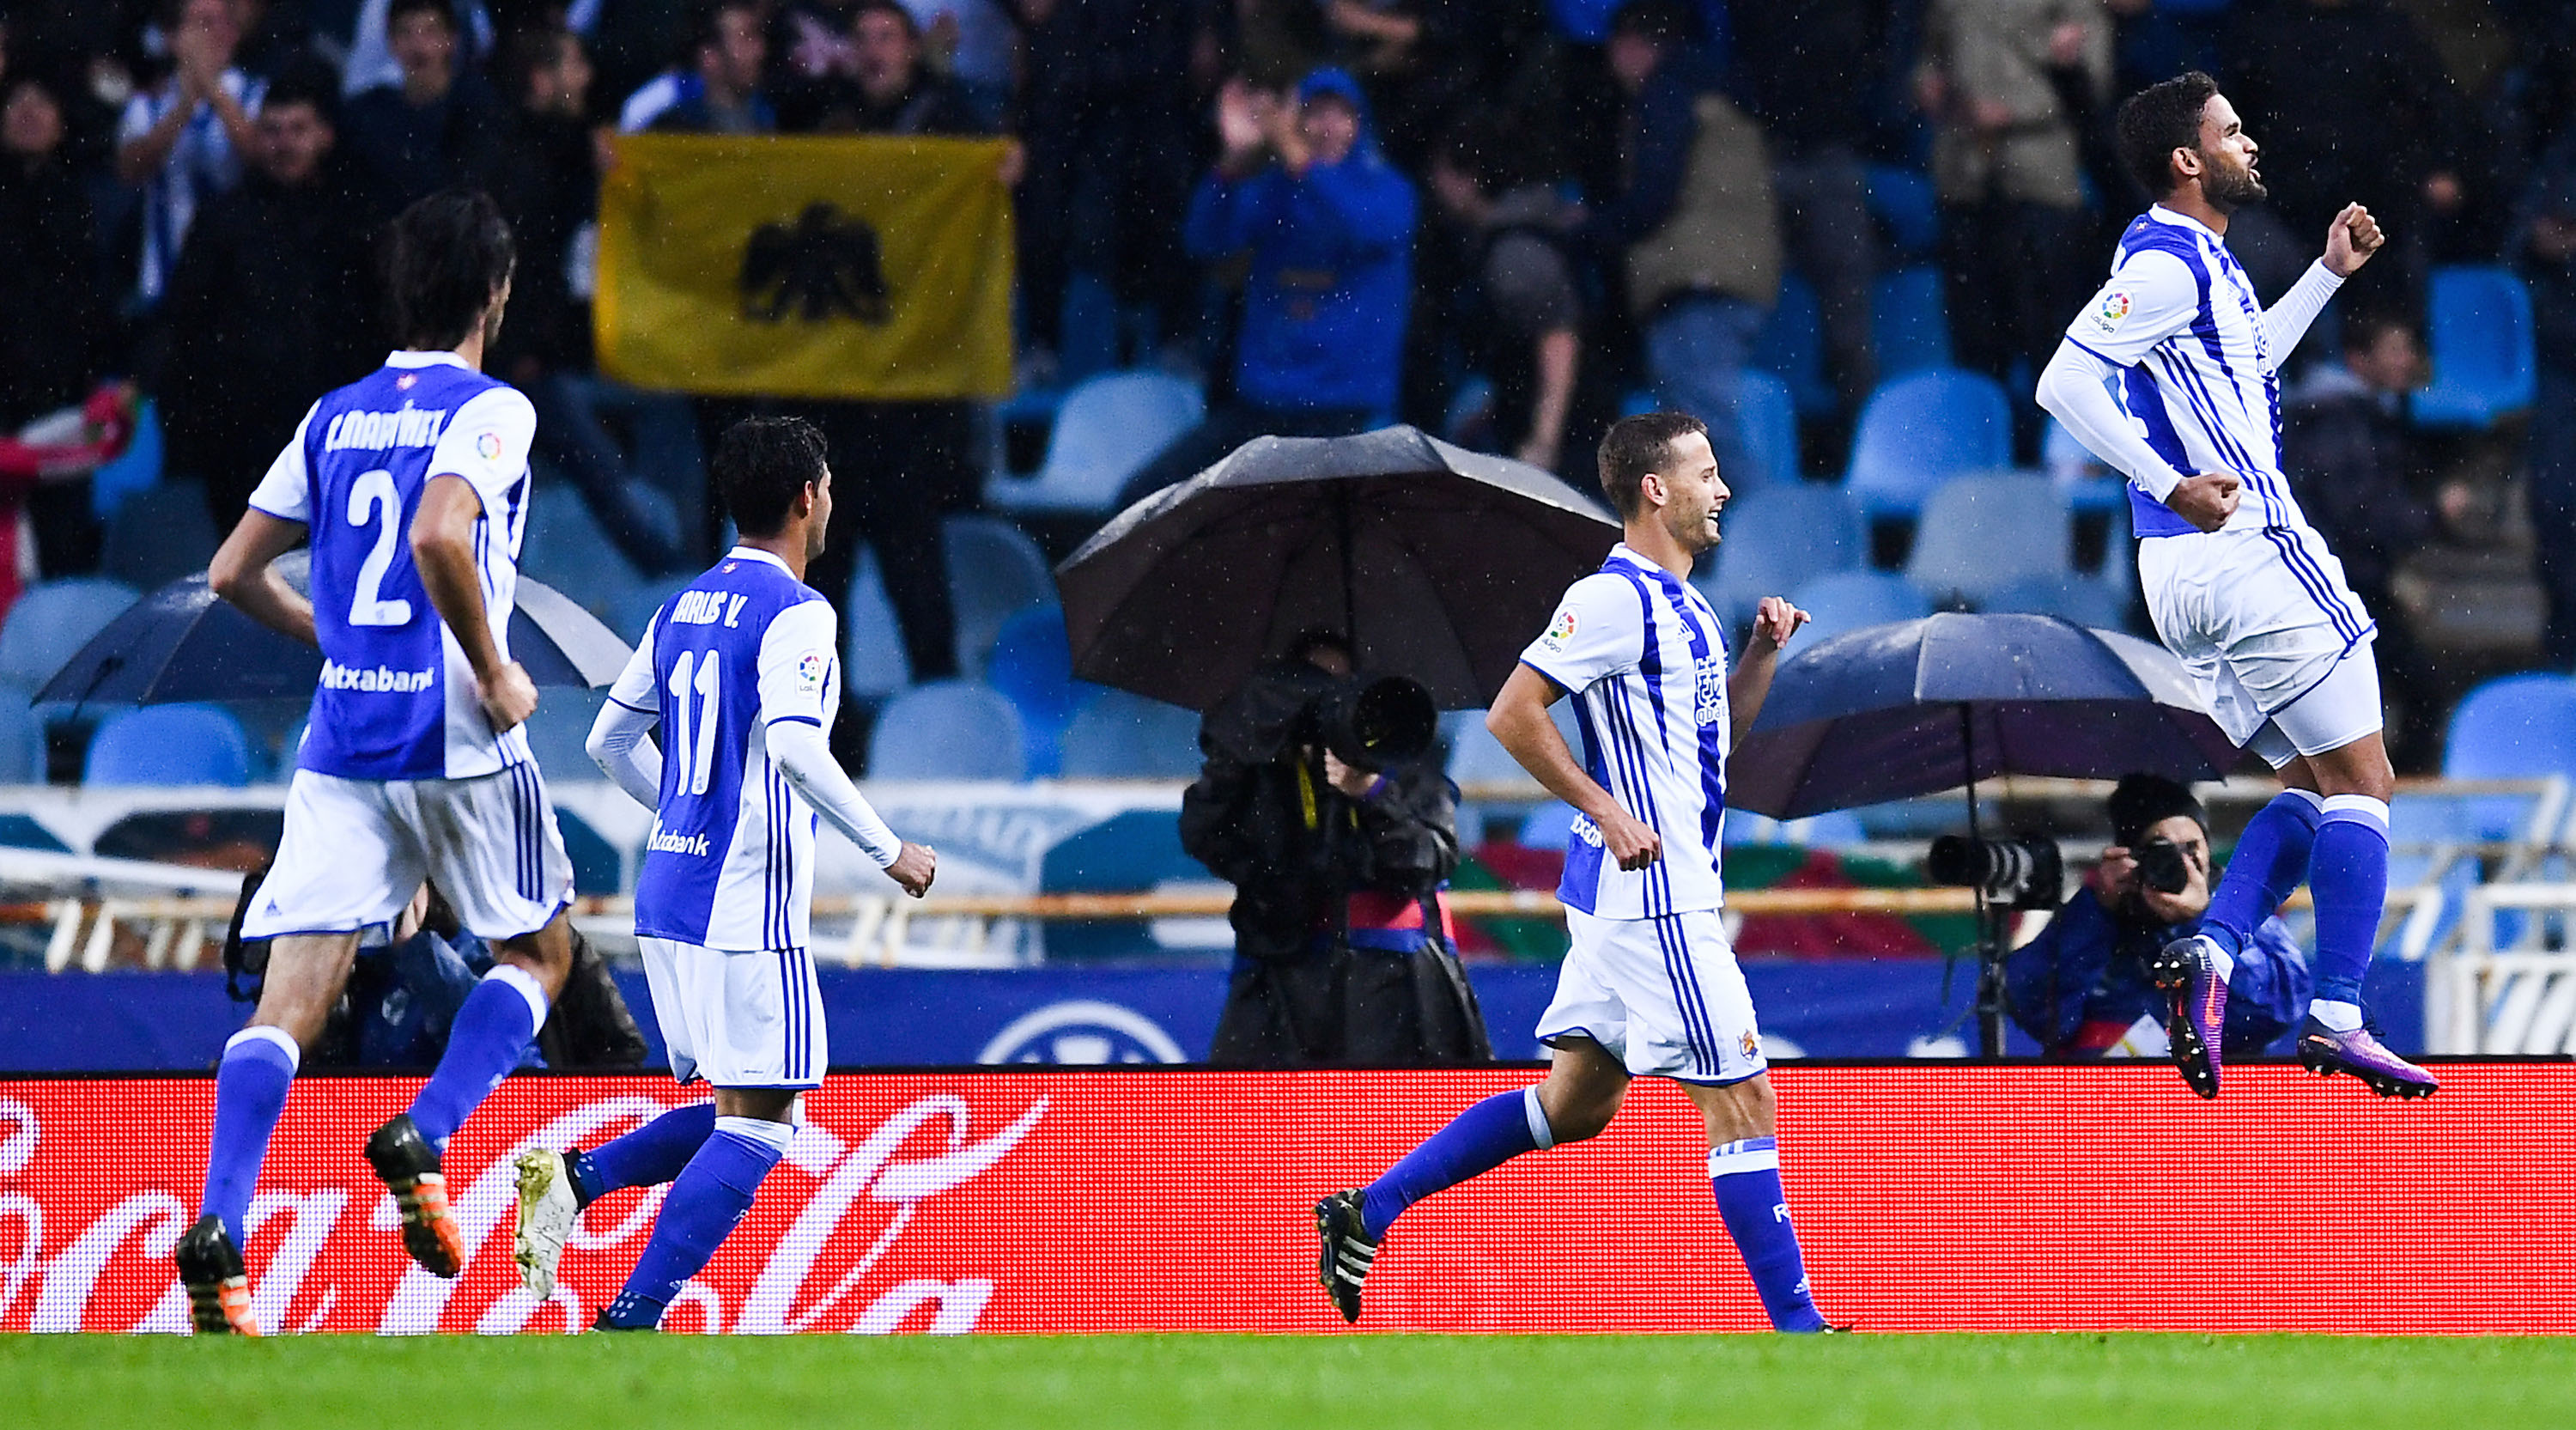 SAN SEBASTIAN, SPAIN - NOVEMBER 05: William Jose (R) of Real Sociedad de Futbol celebrates after scoring his team's second goal during the La Liga match between Real Sociedad de Futbol and Atletico de Madrid at Anoeta stadium on November 5, 2016 in San Sebastian, Spain. (Photo by David Ramos/Getty Images)